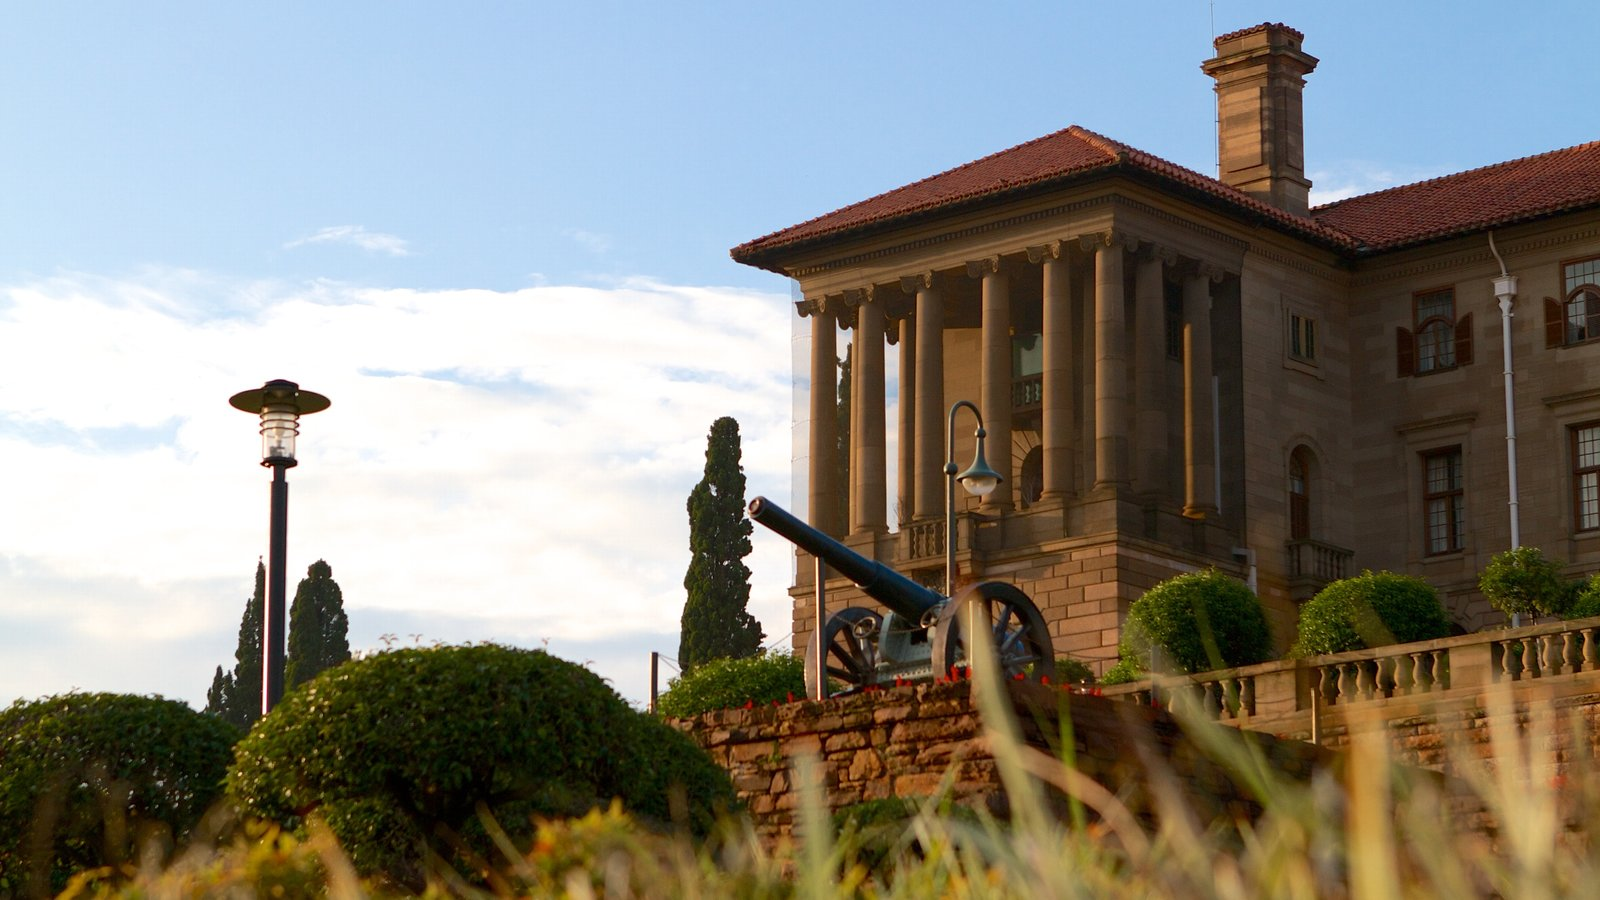 Union Buildings showing military items, an administrative buidling and heritage architecture